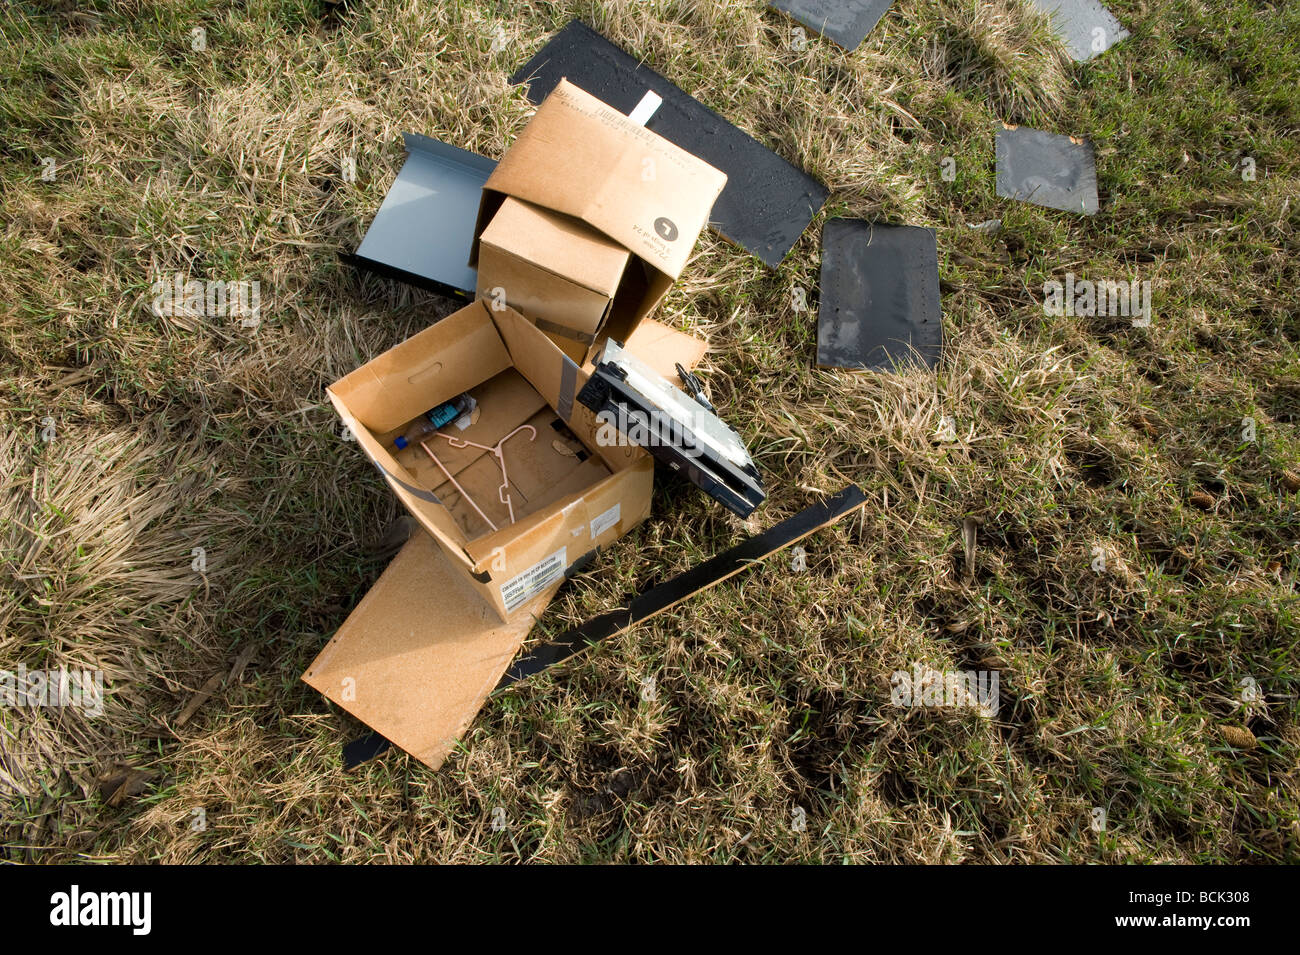 Trash dumped outside in the grass - Stock Image